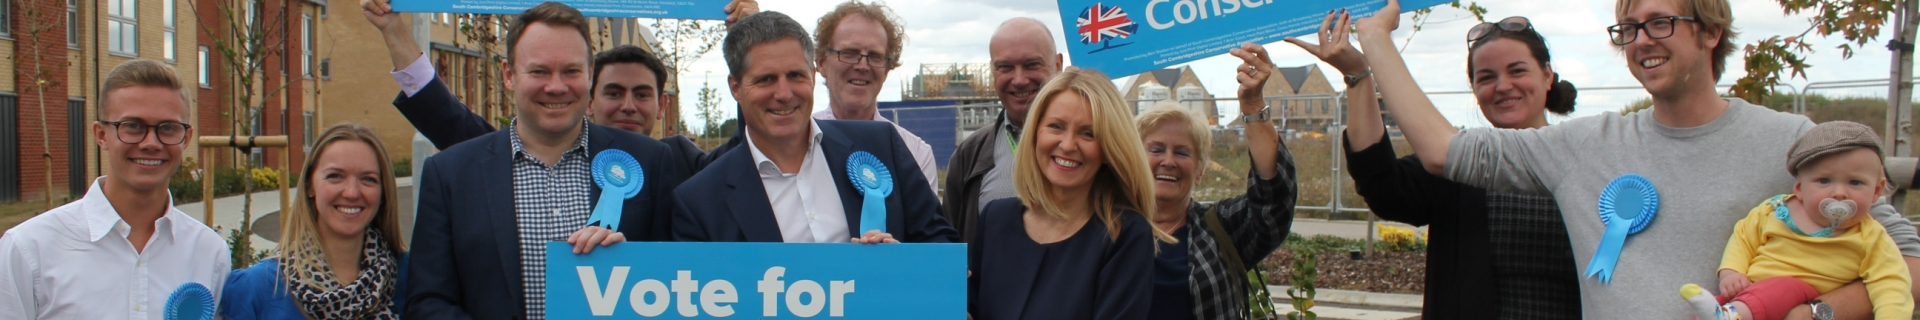 Banner image for South Cambridgeshire